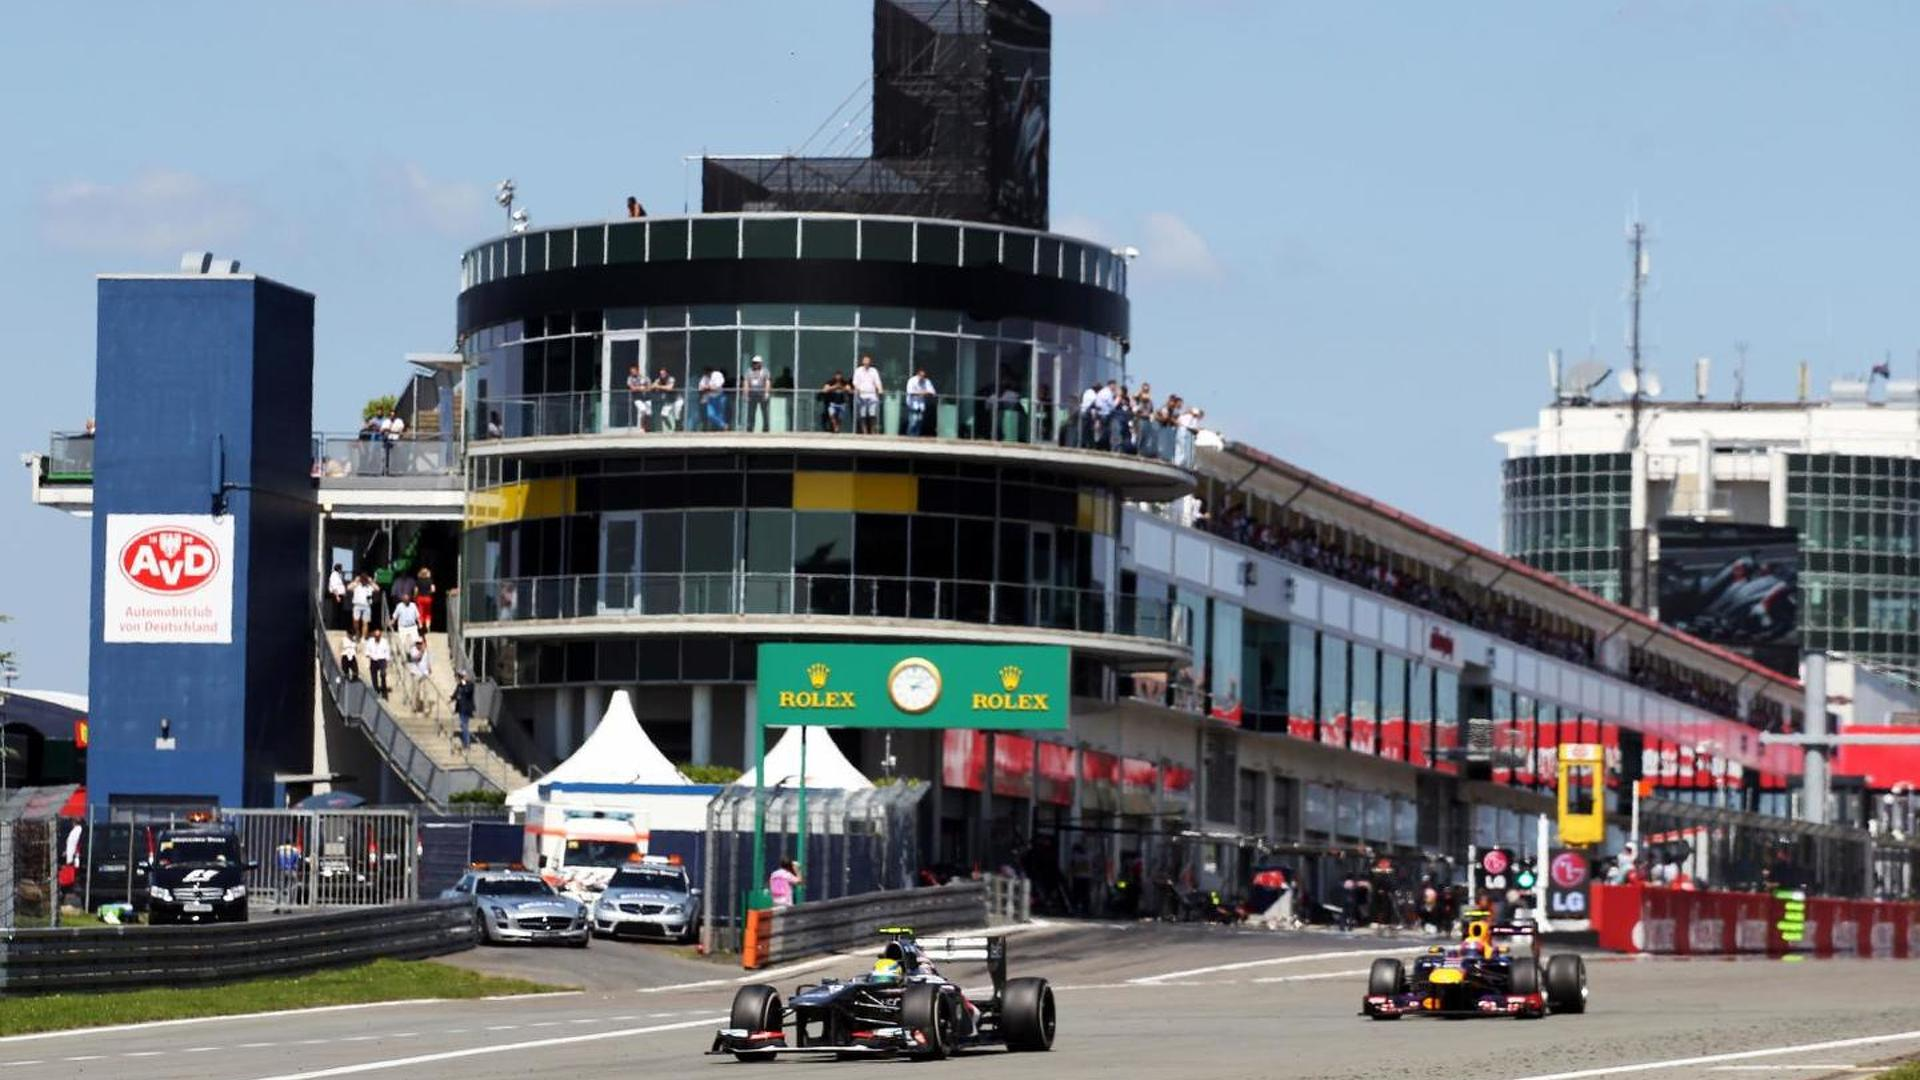 German GP 'dead' as circuits pull out